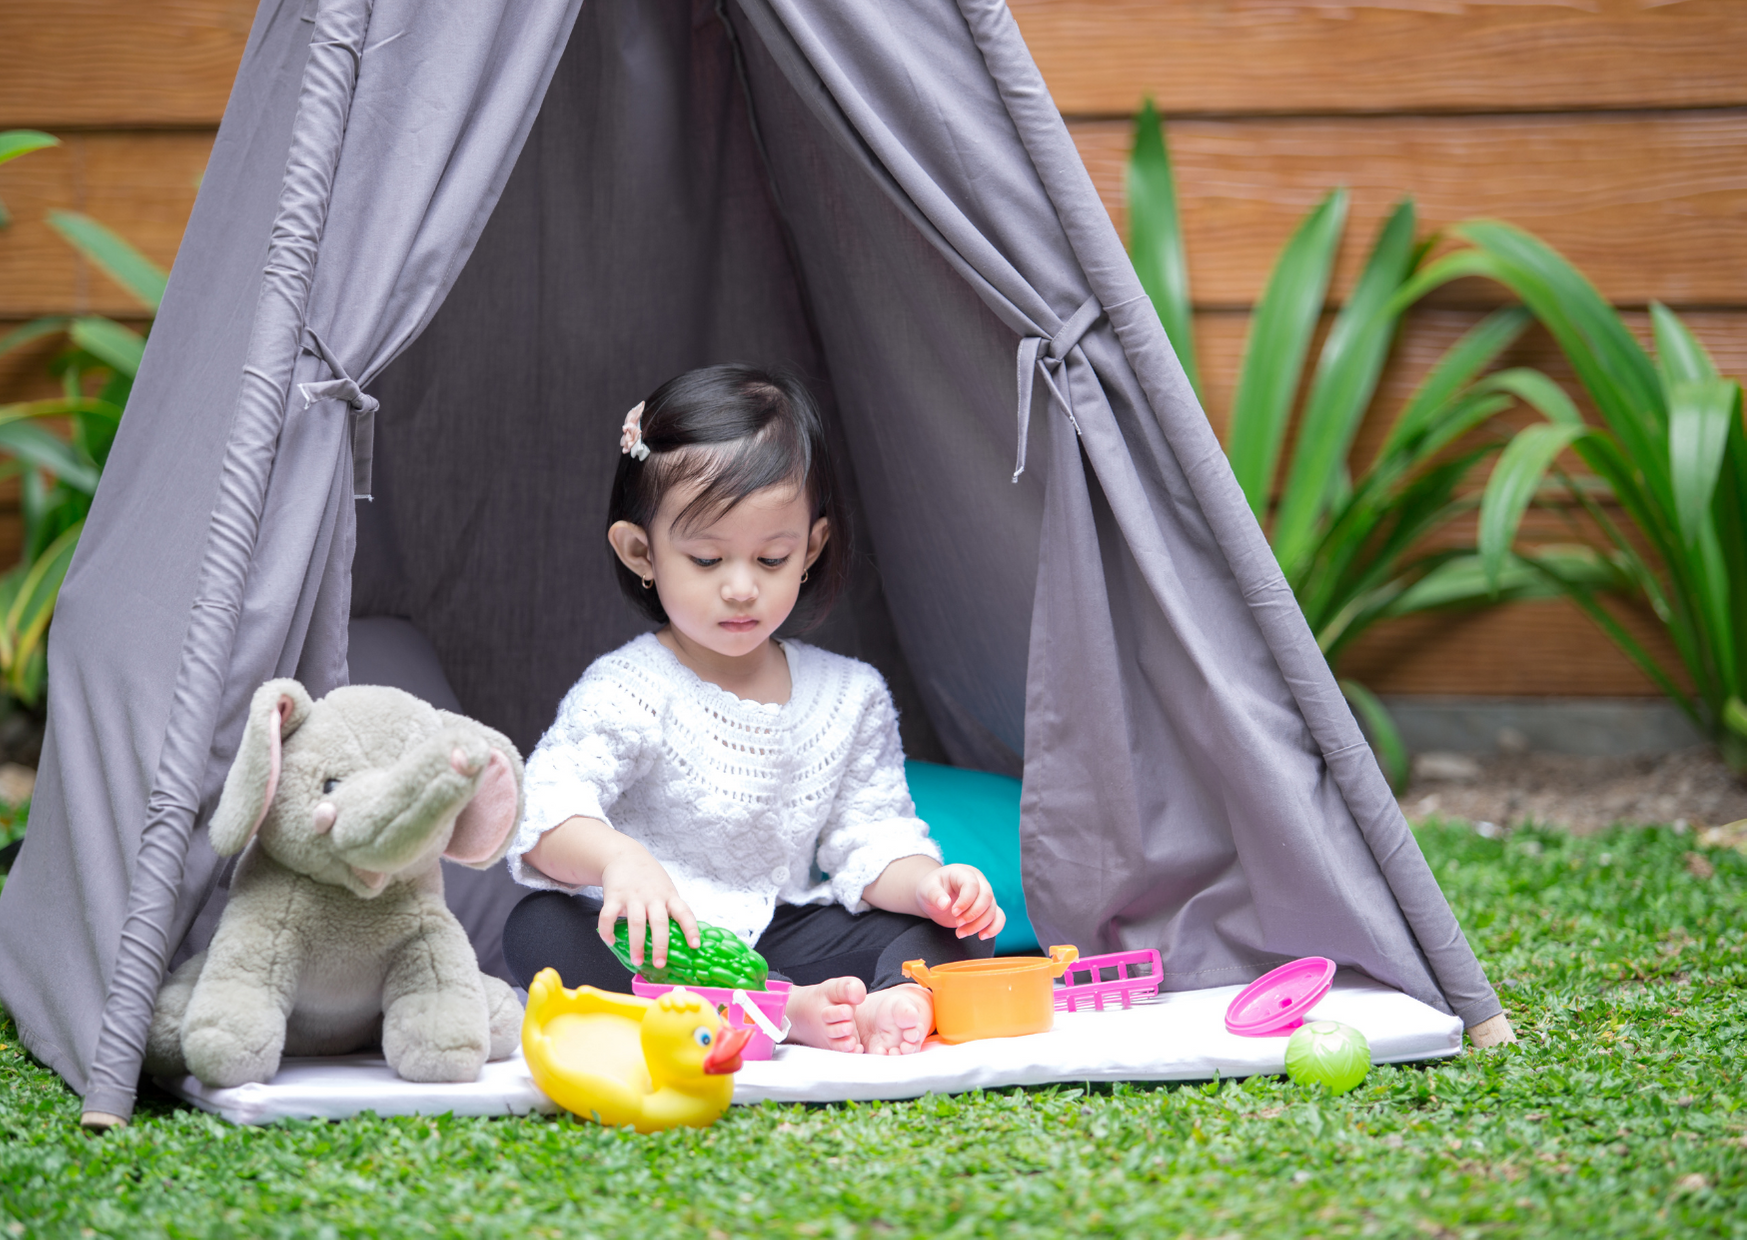 Kid playing inside the small tent of The Backyard Heroes Activity Tent and Alternative Play Tents for Kids Backyard Camping